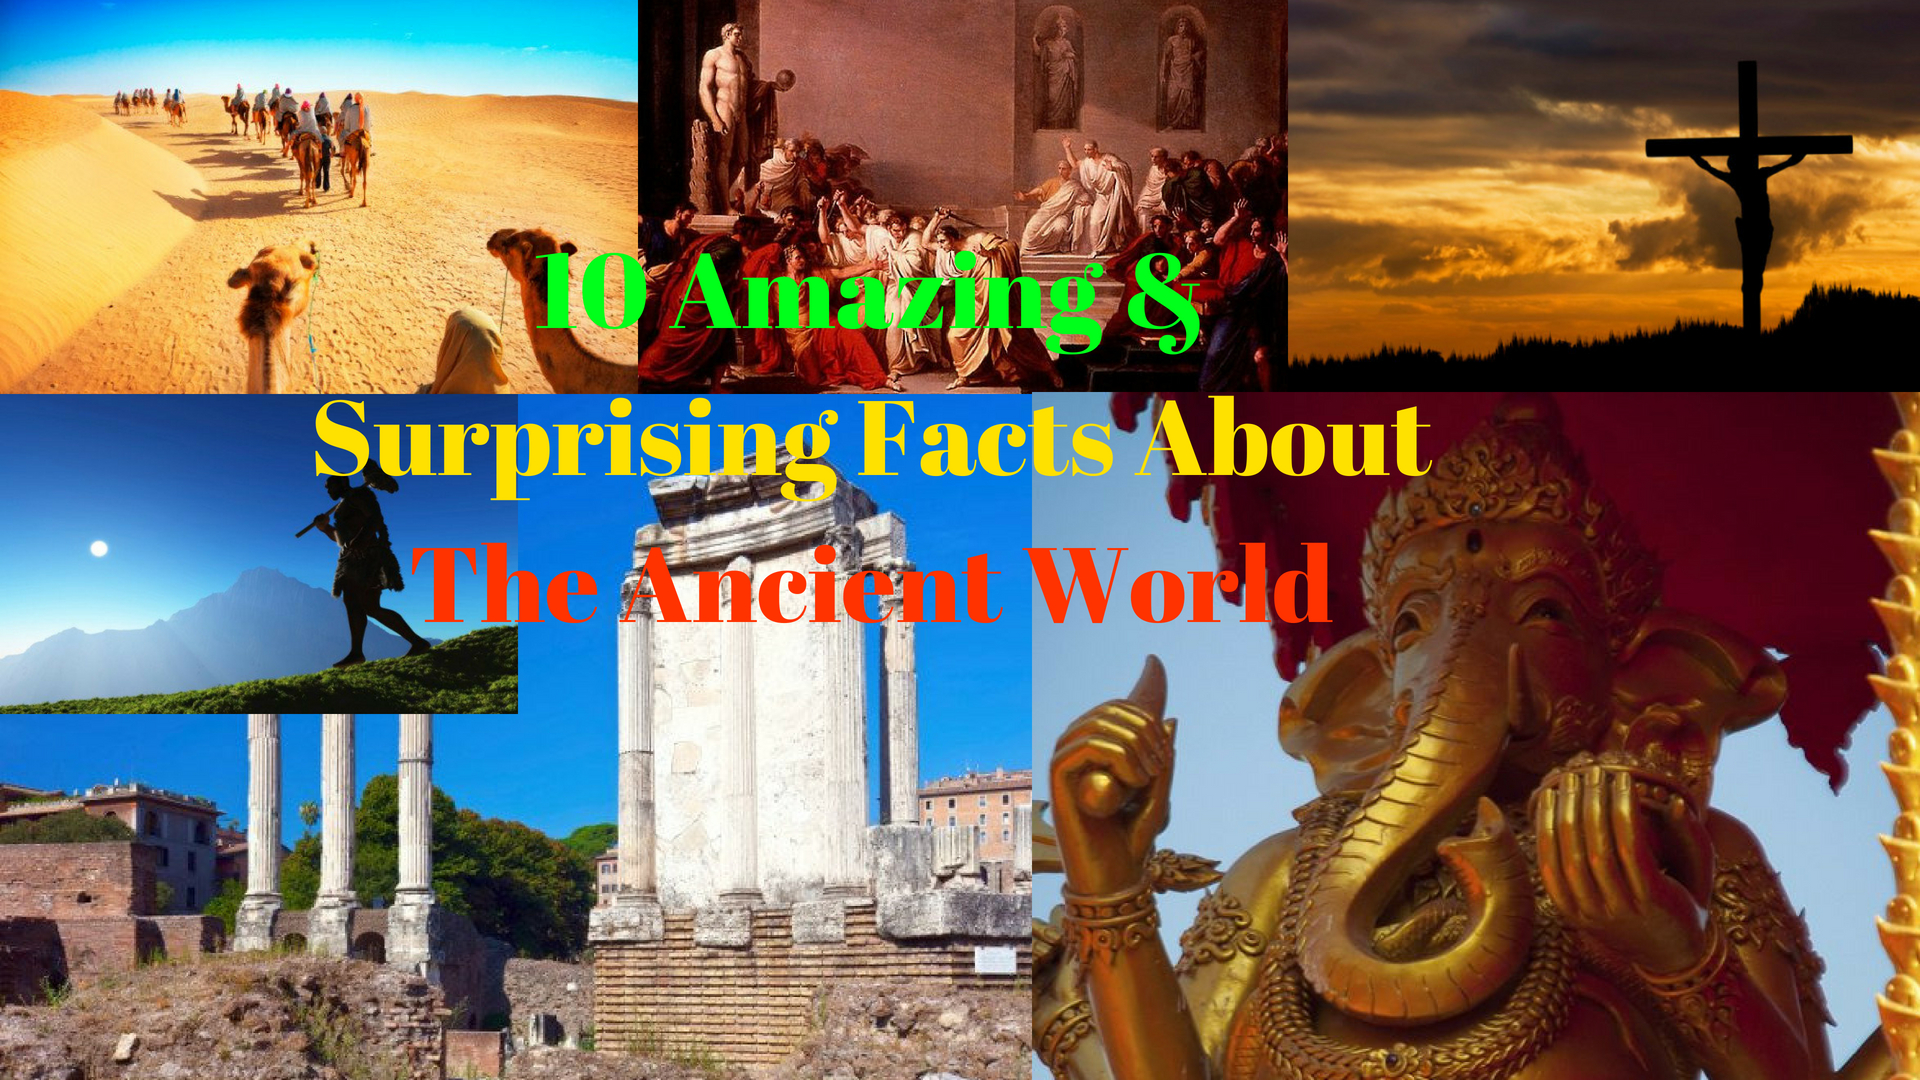 10 Amazing & Surprising Facts About The Ancient World